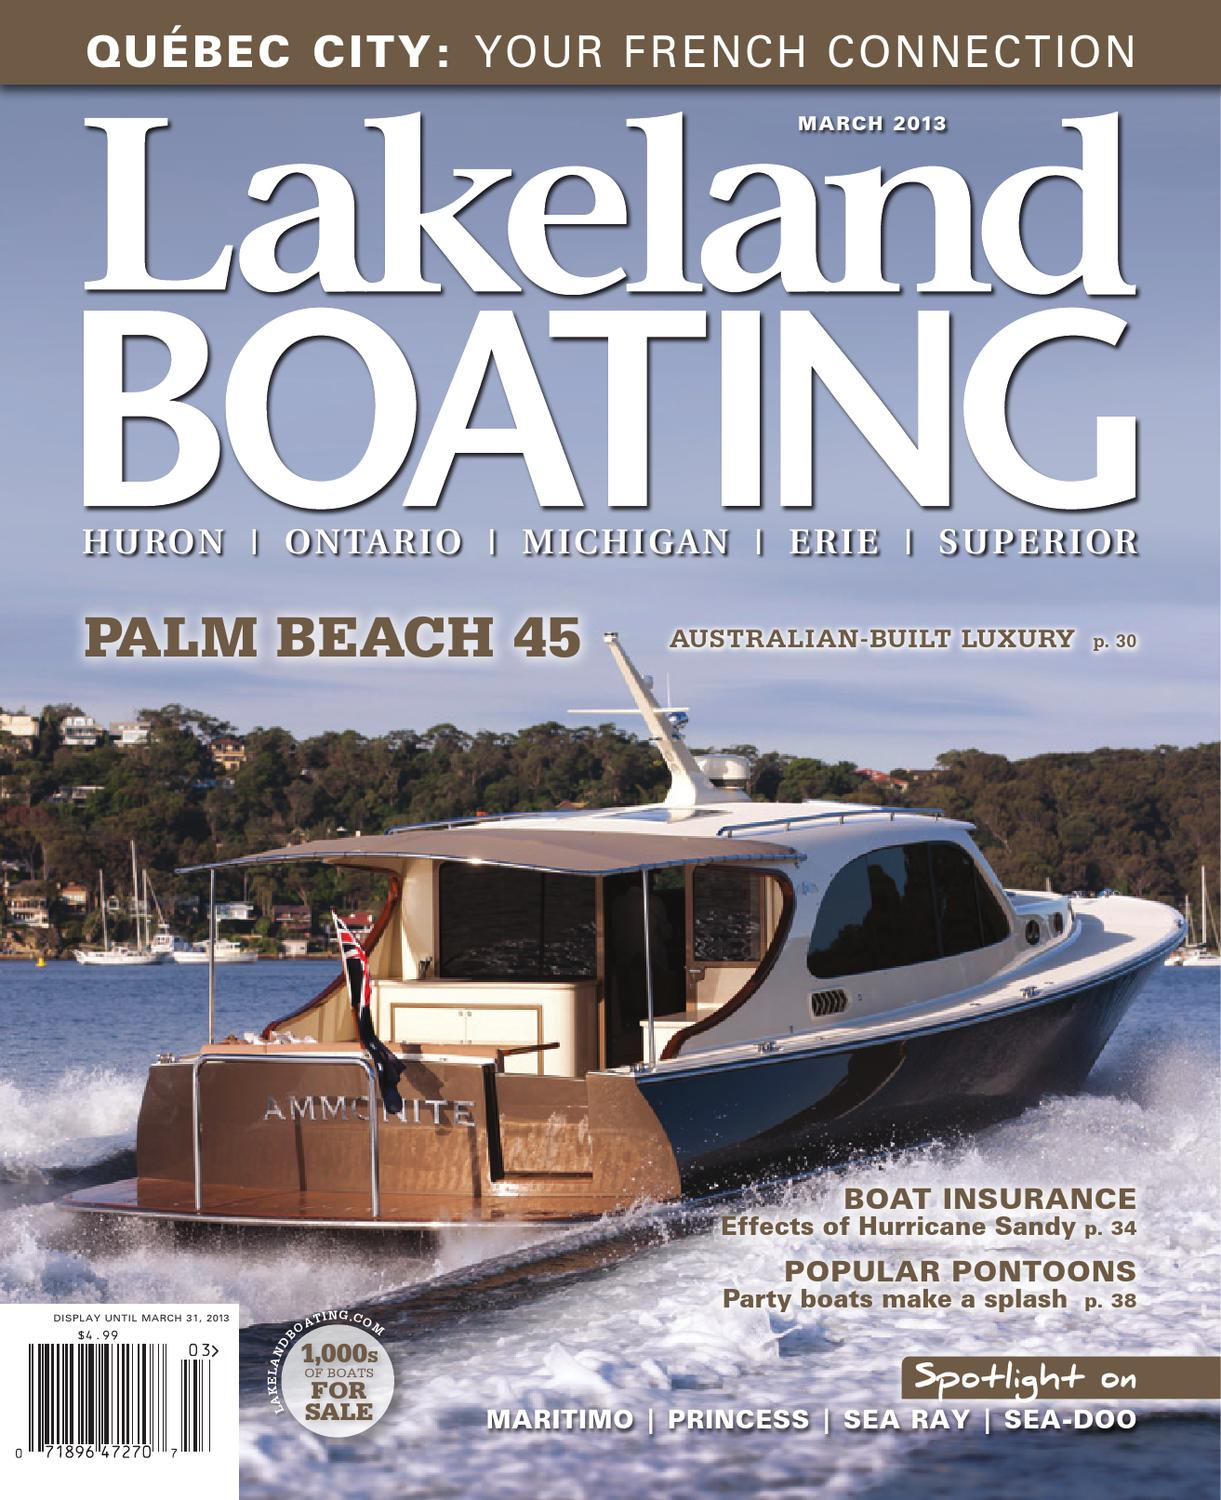 4002eb057bf5fa Lakeland Boating March 2013 by Lakeland Boating Magazine - issuu